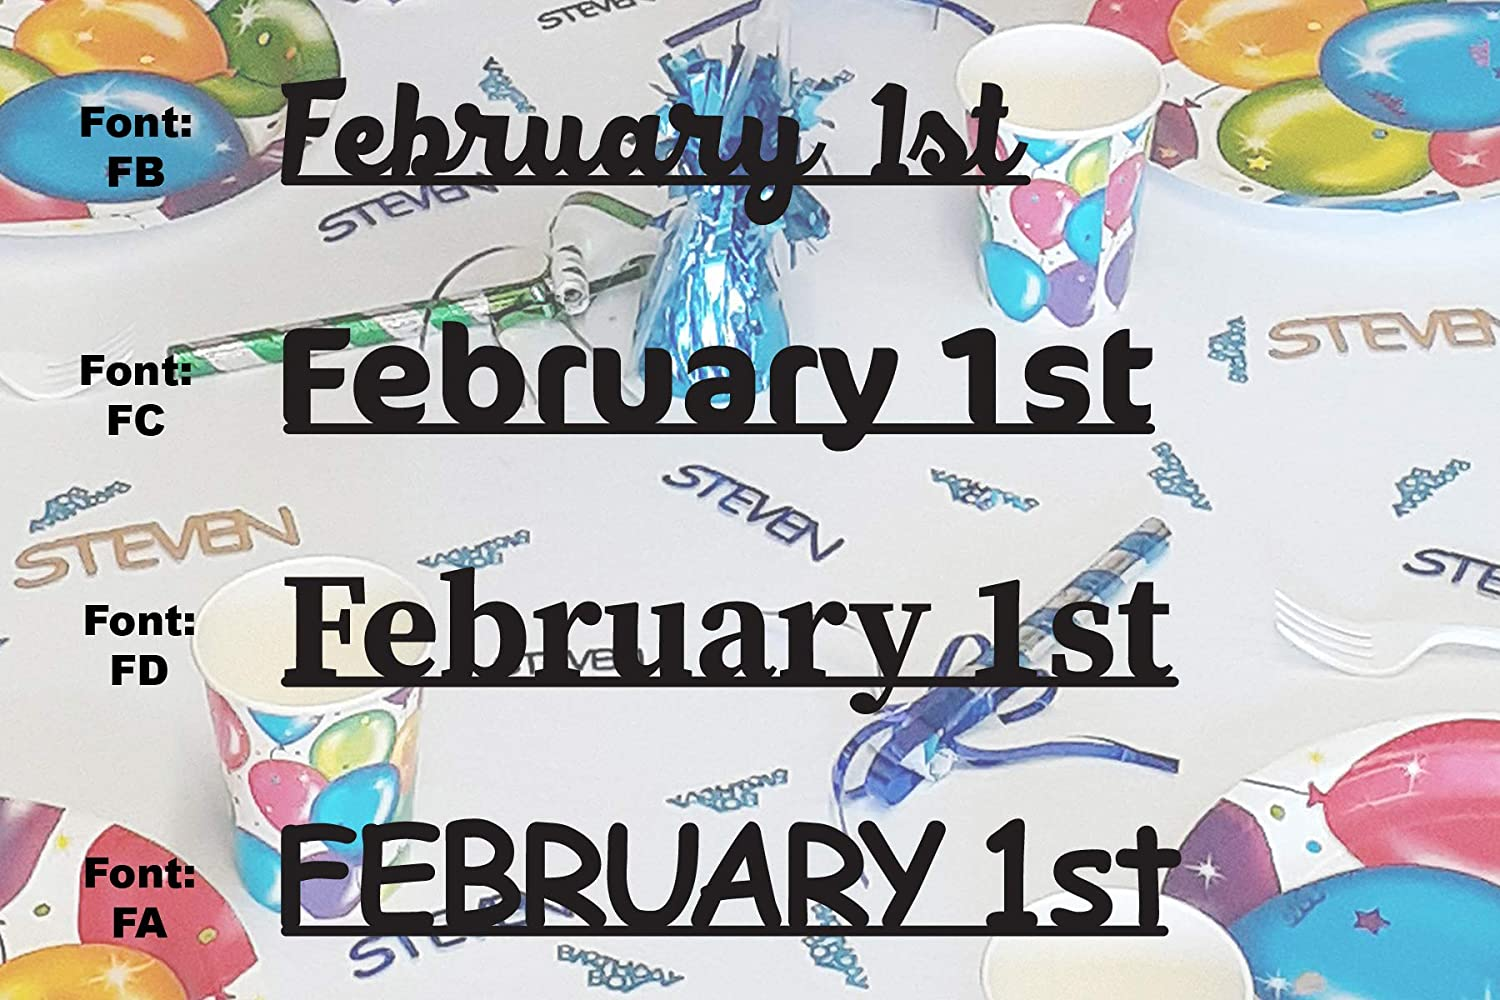 FEBRUARY Branded Branded goods goods 1st - Date Confetti in Con Metallic Includes 12 Colors.